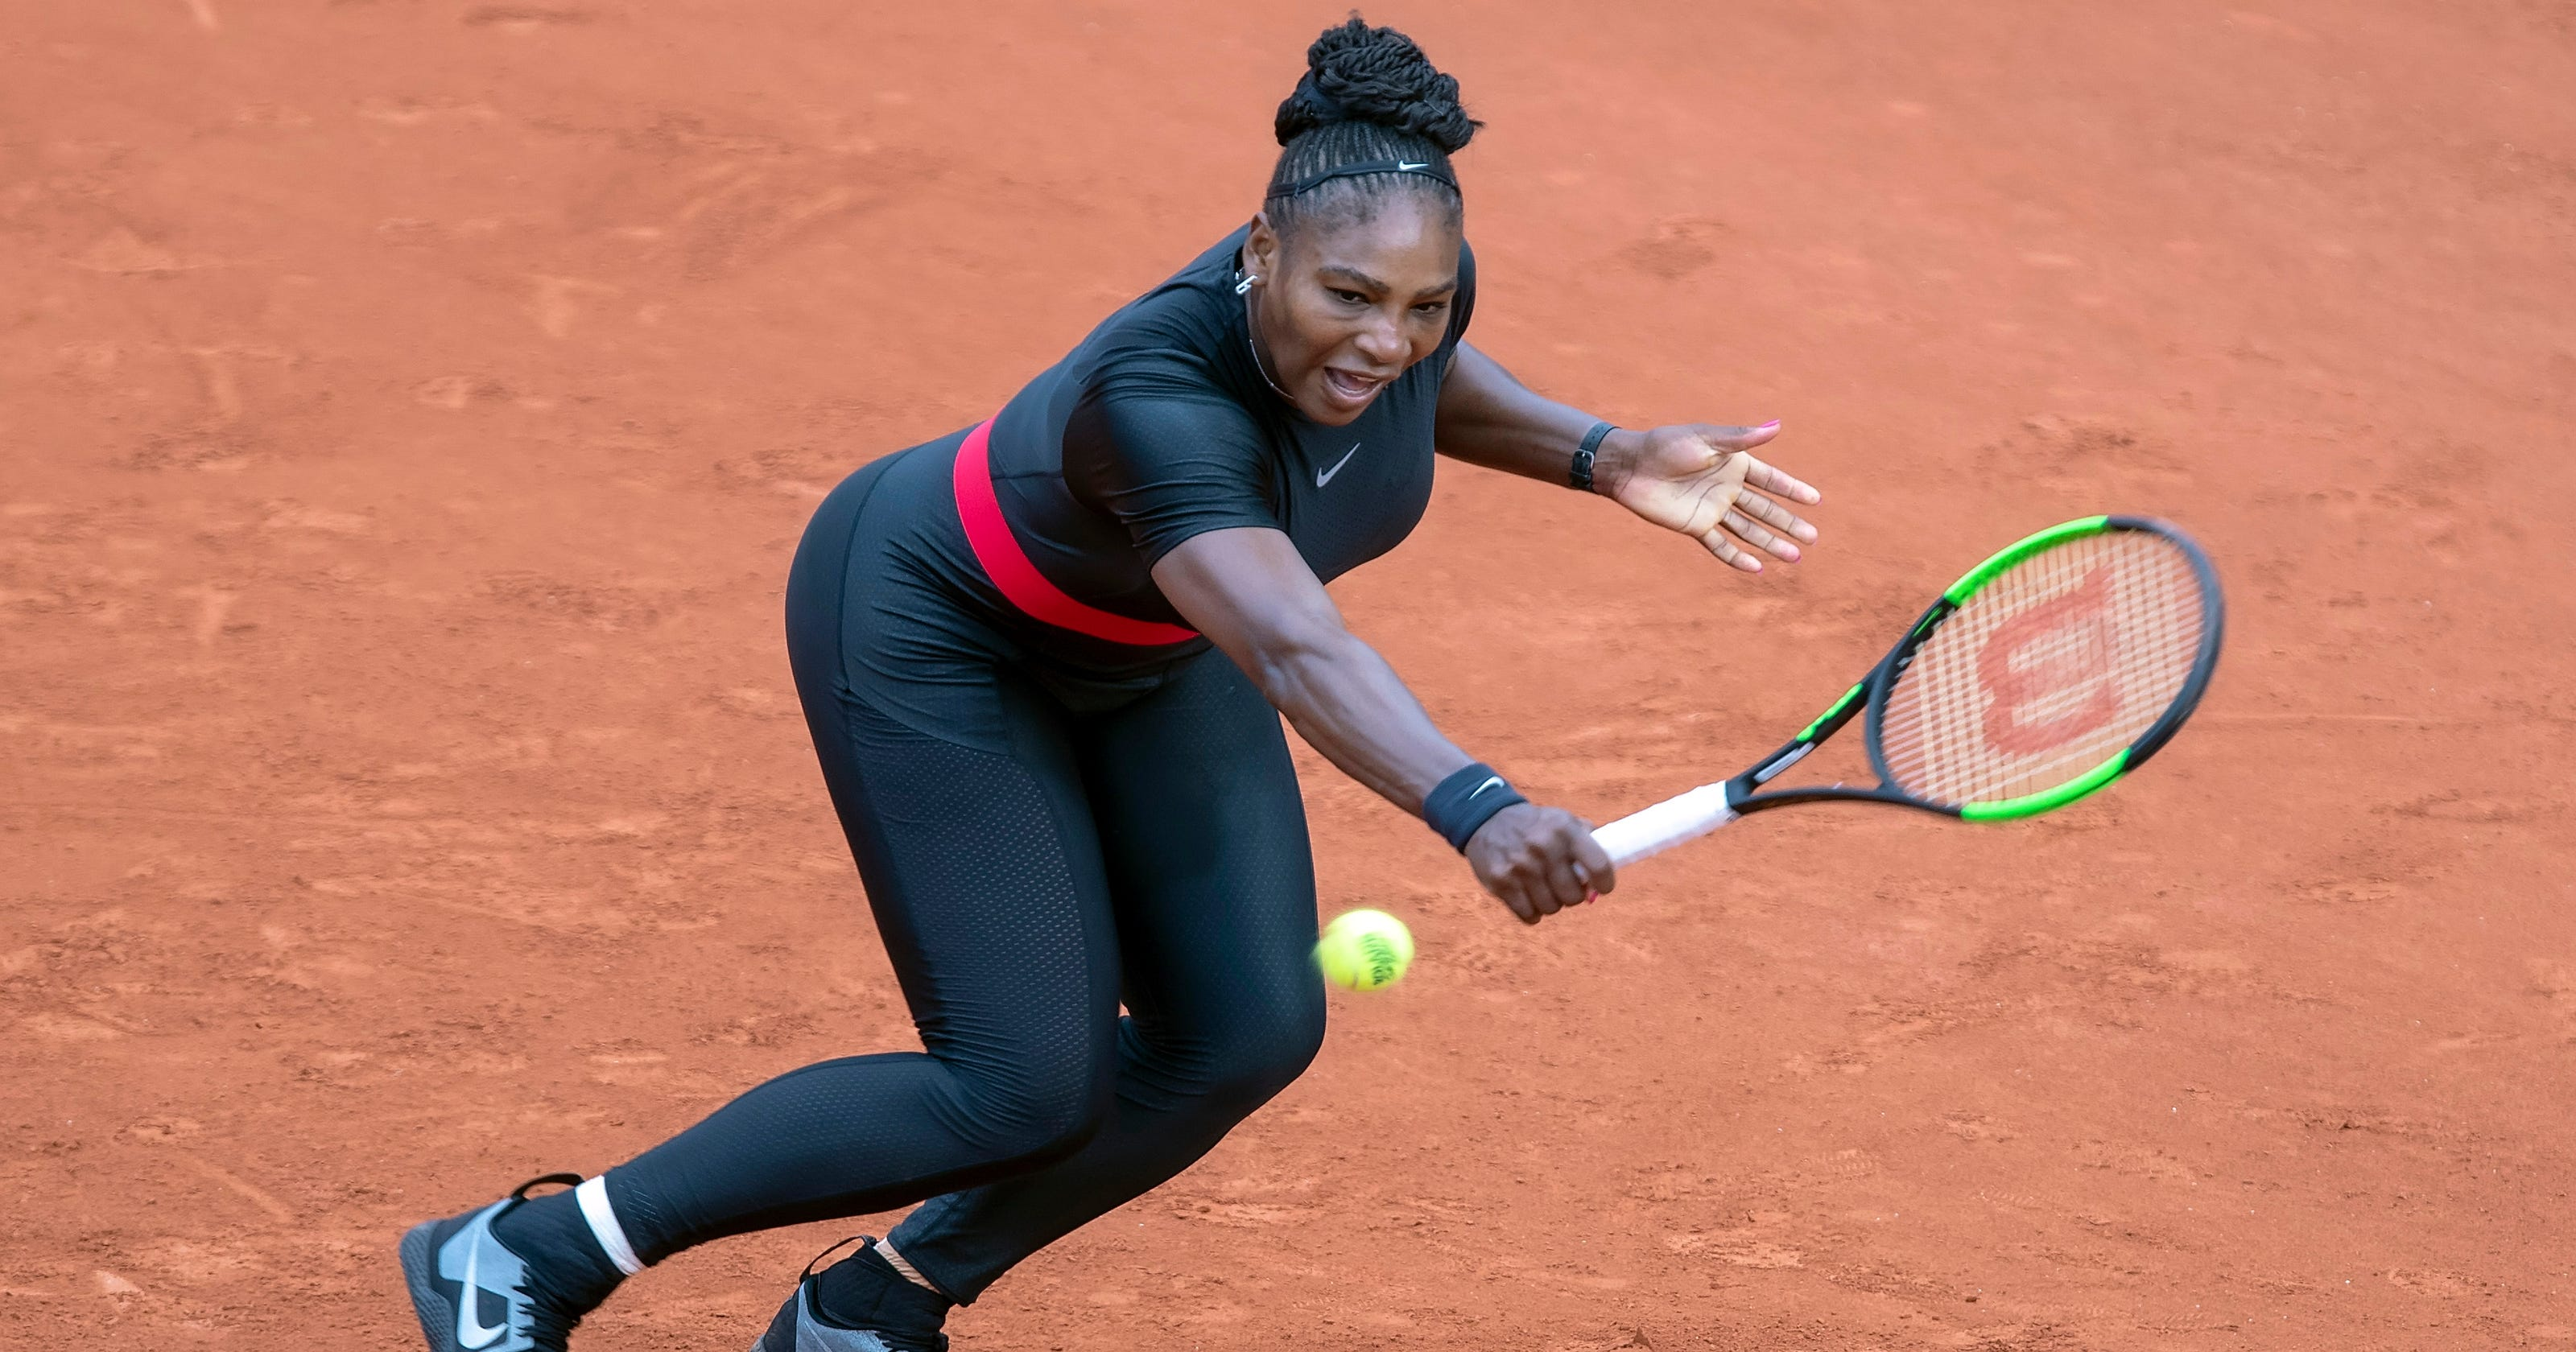 Serena Williams launches new fashion venture while playing French Open a9e998d3f